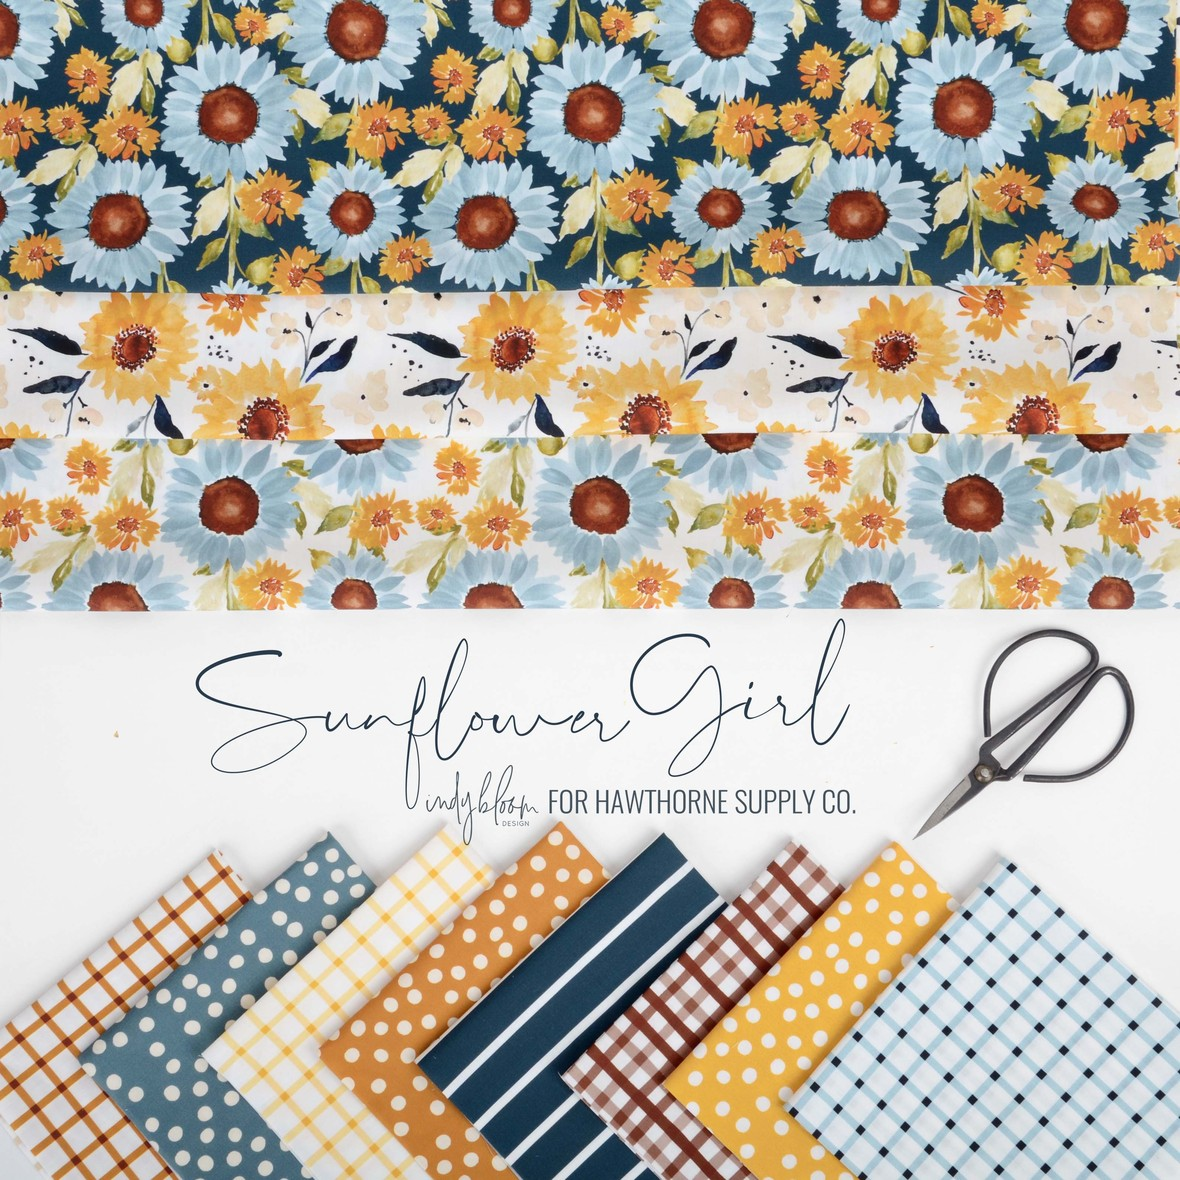 Sunflower Girl Fabric from Indy Bloom at Hawthorne Supply Co